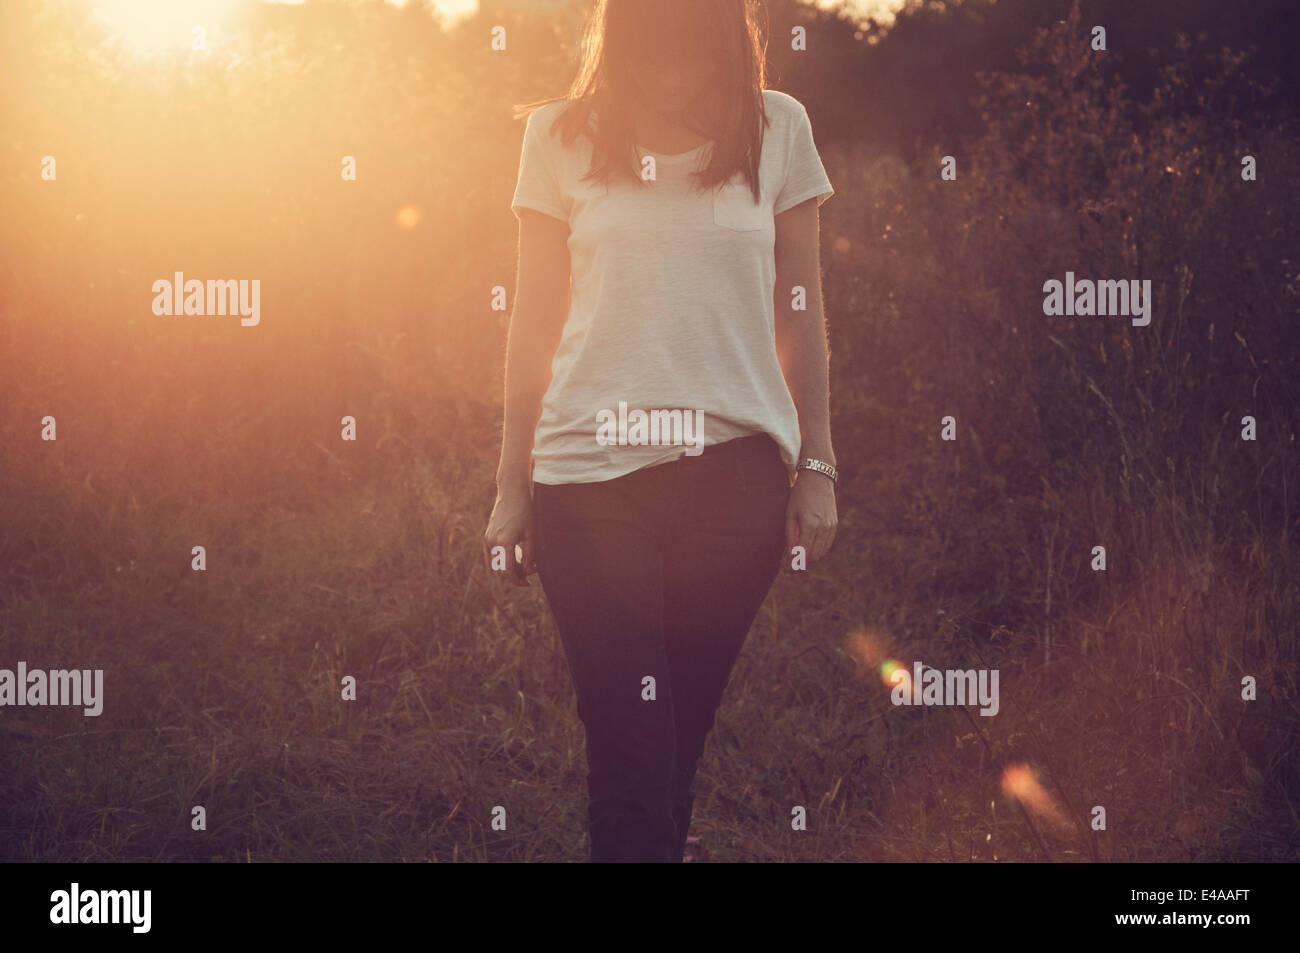 Mid adult woman standing in field Stock Photo